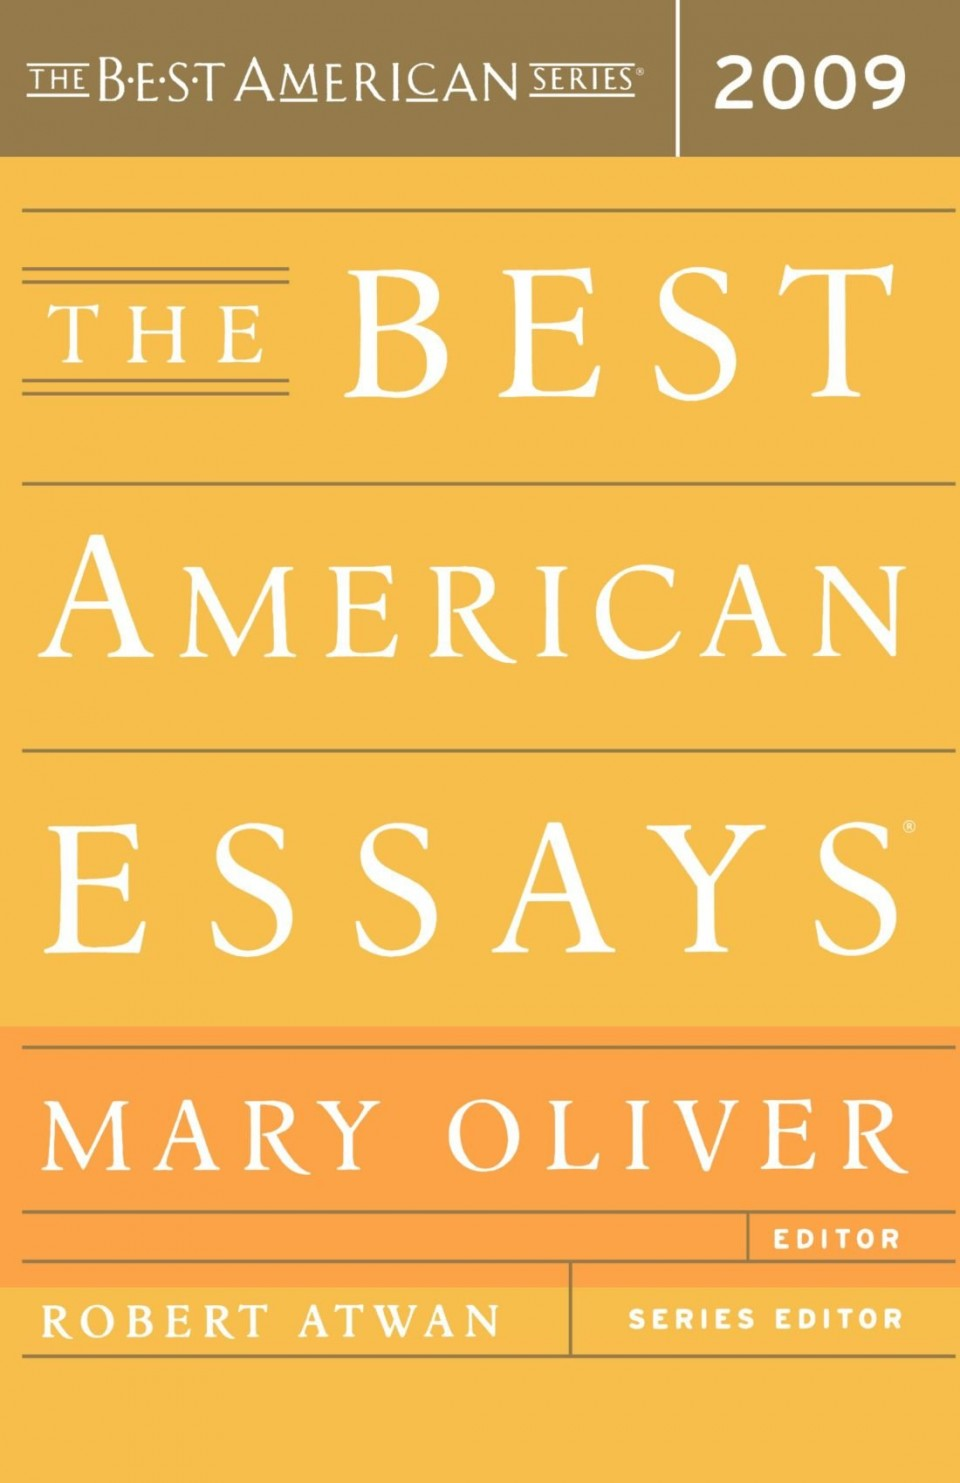 008 617qb5slhfl Essay Example The Best American Wonderful Essays 2013 Pdf Download Of Century Sparknotes 2017 960